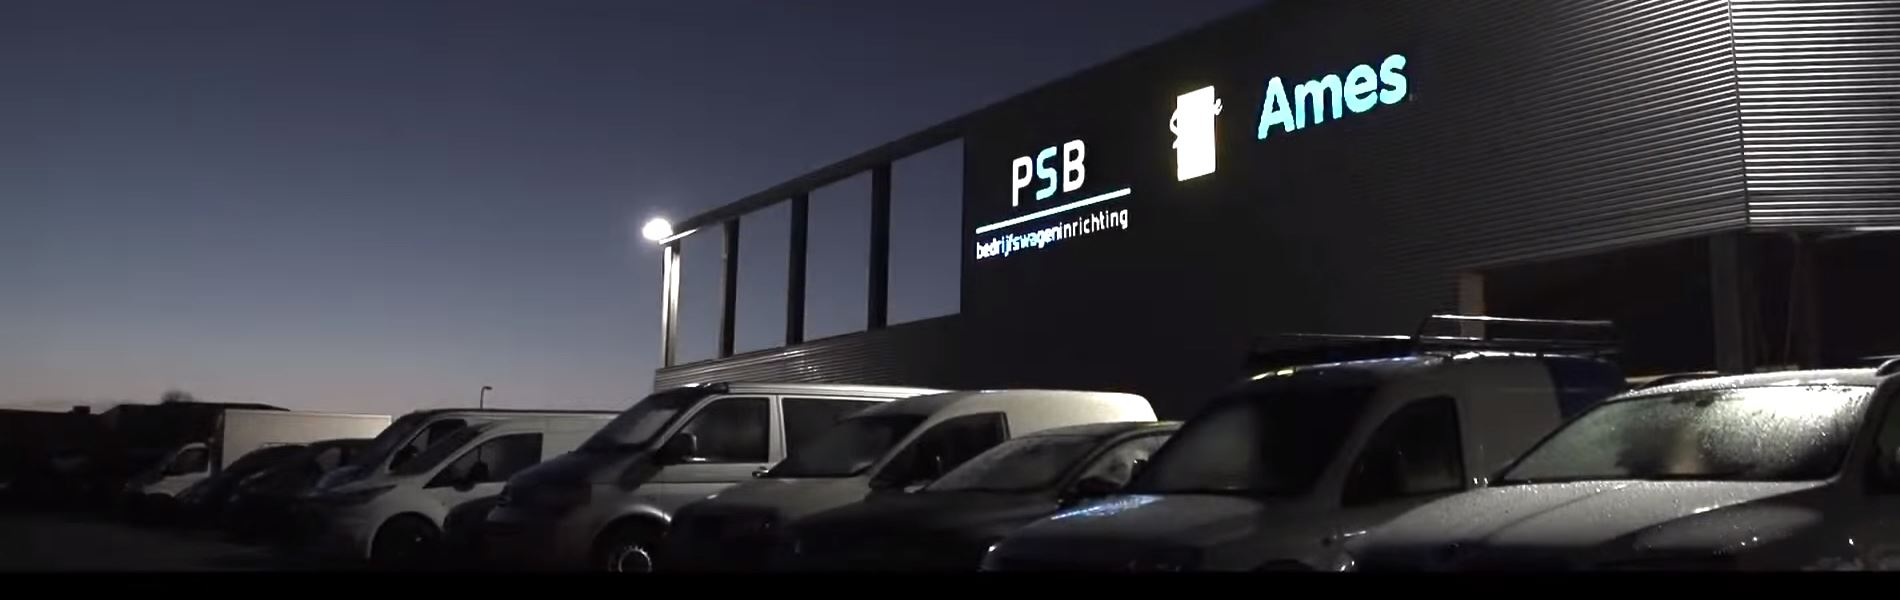 psb video banner